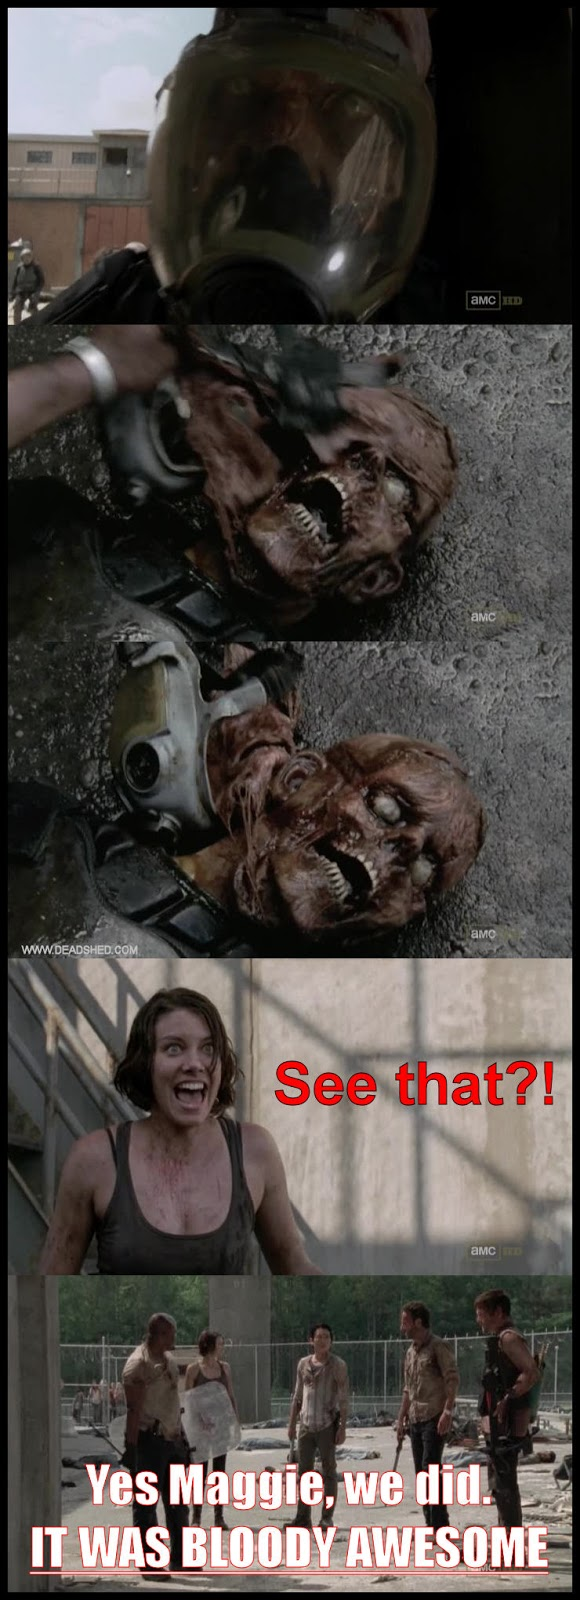 Maggie_Gas_Mask_Zombie_The_Walking_Dead_Season_3_Meme_DeadShed deadshed productions hershel vs puberty, and maggie loves gore